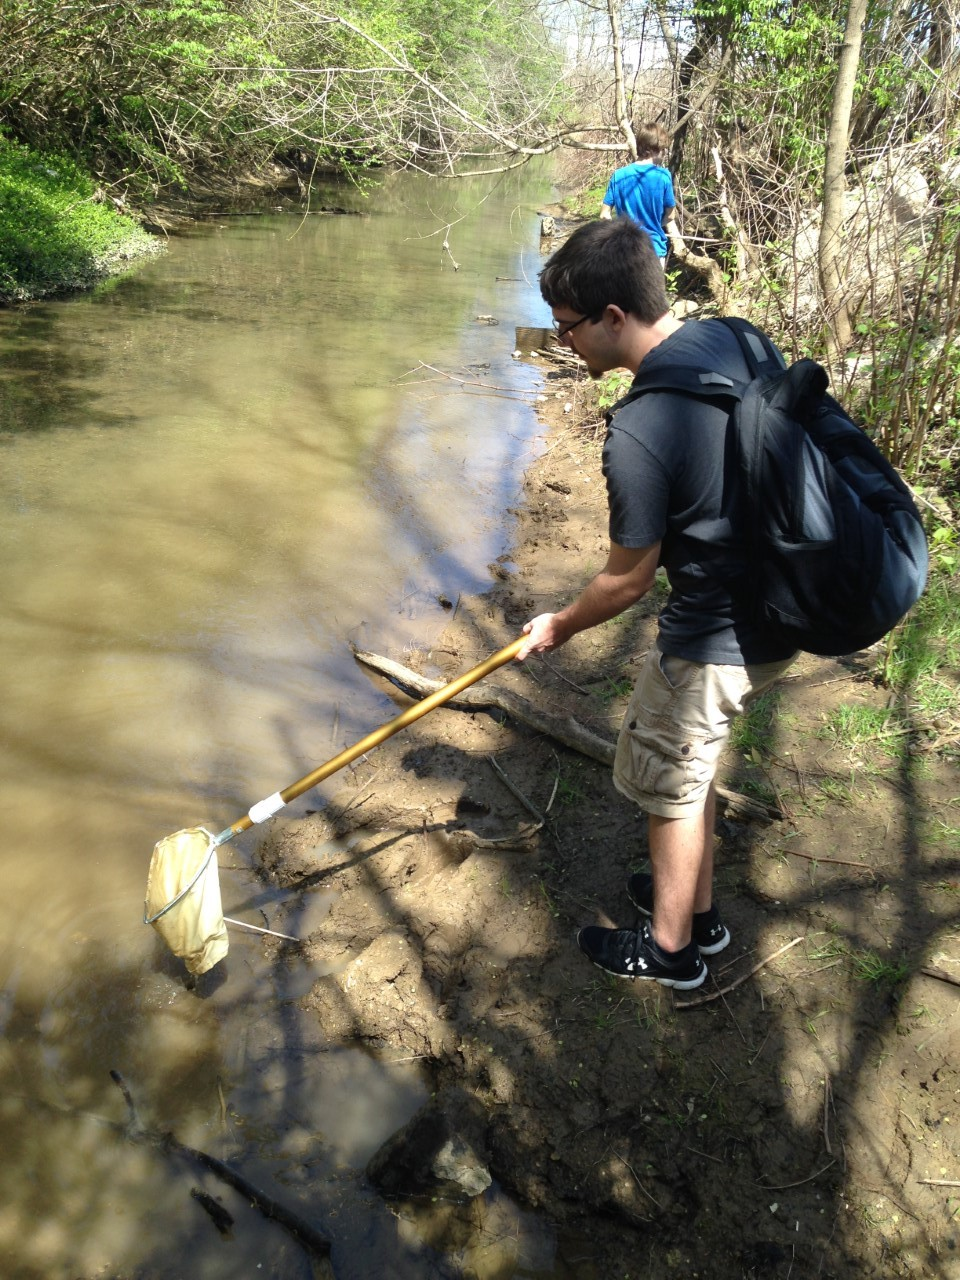 Mr. Setters' Conservation Biology class makes periodic trips to Hinkston creek to perform a stream assessment by collecting and identifying a wide array of macro-vertebrates.